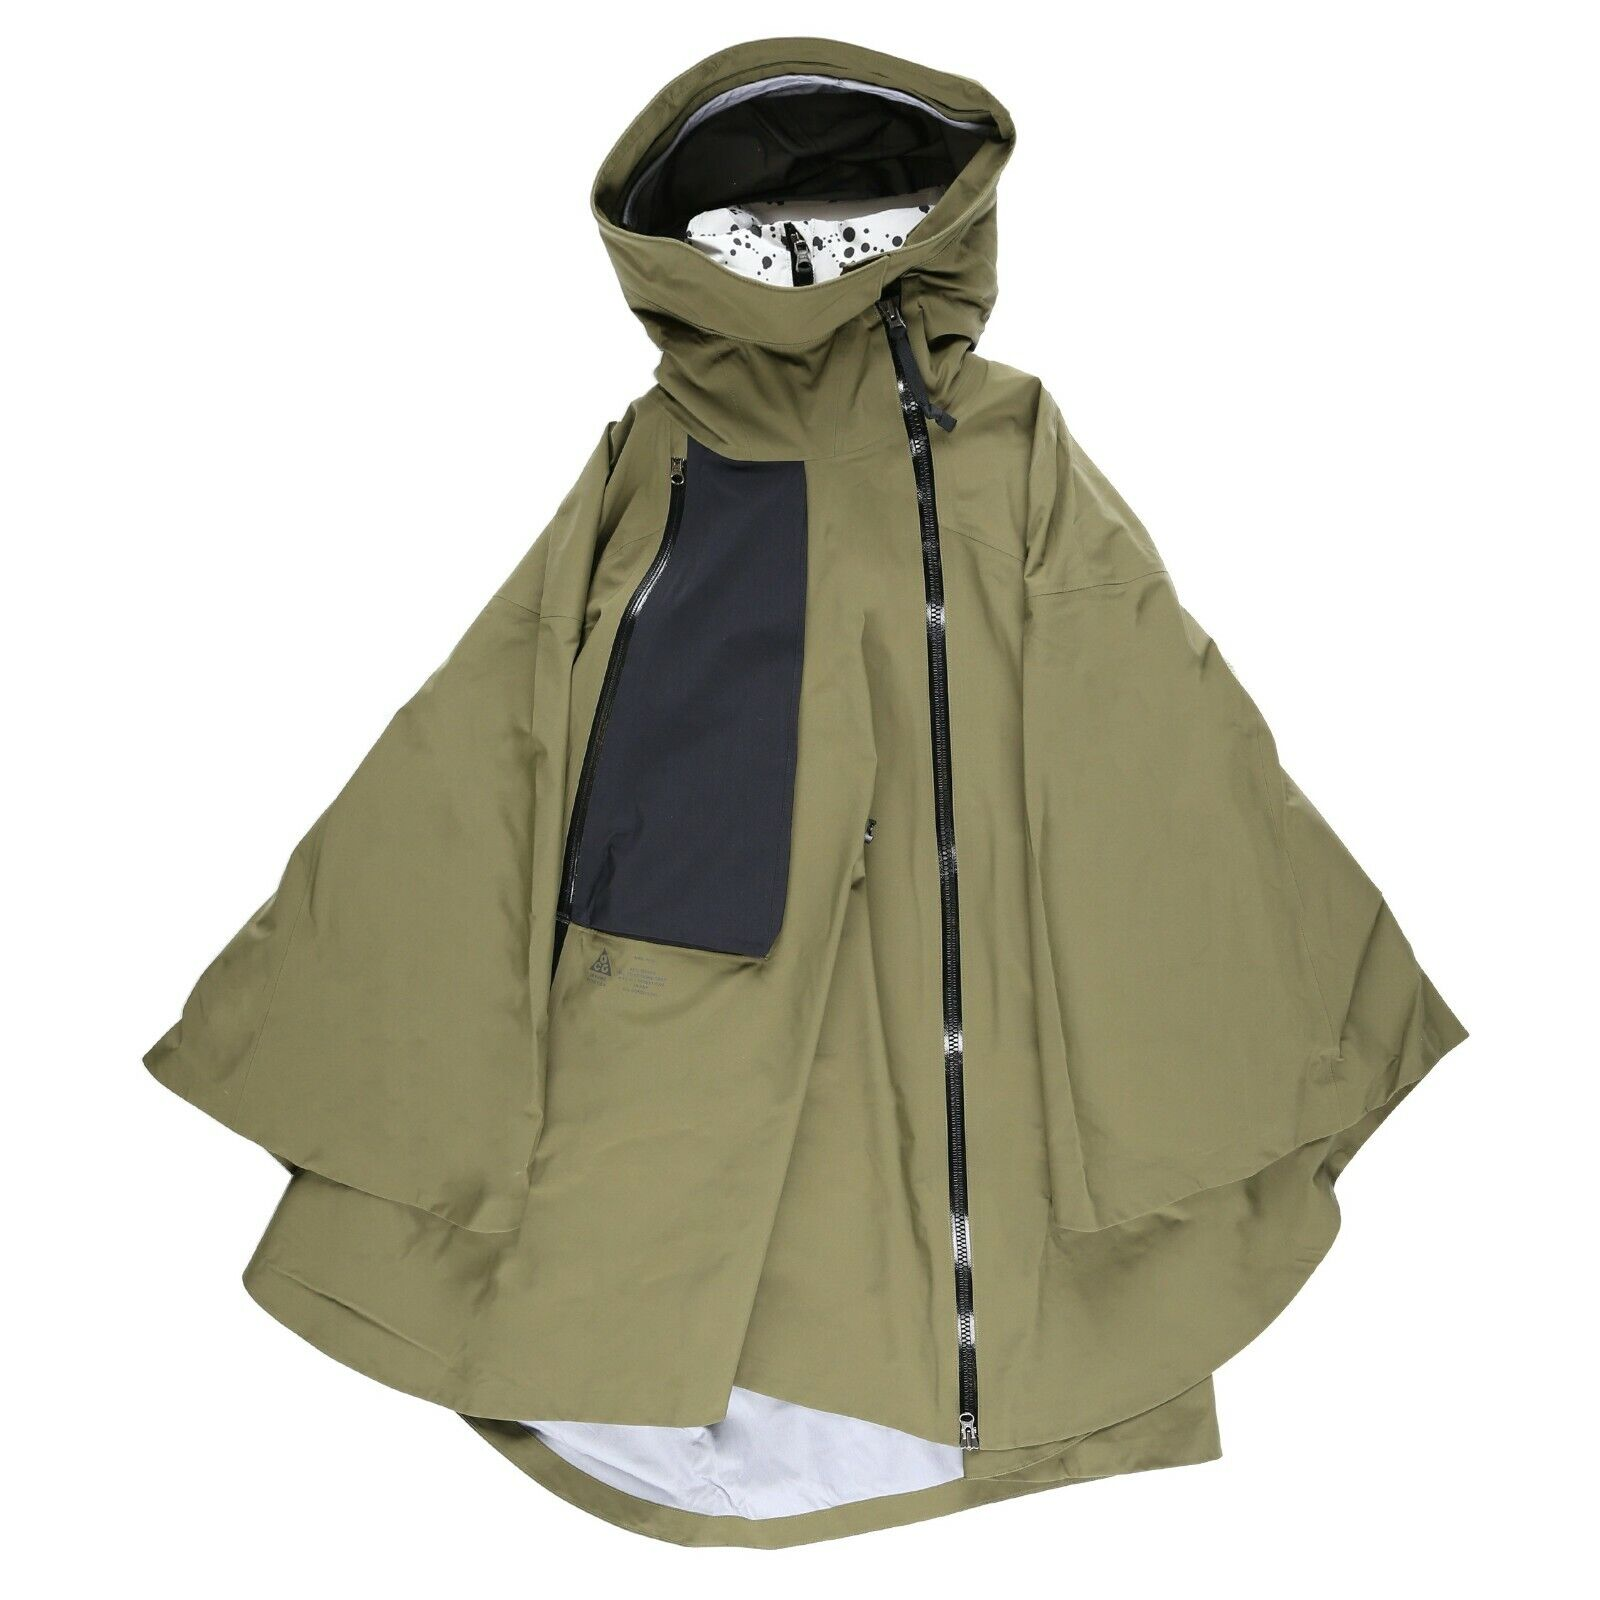 Nike Ponc ACG 3 in 1 System AR4542-395 Olive Down Vest Gore-